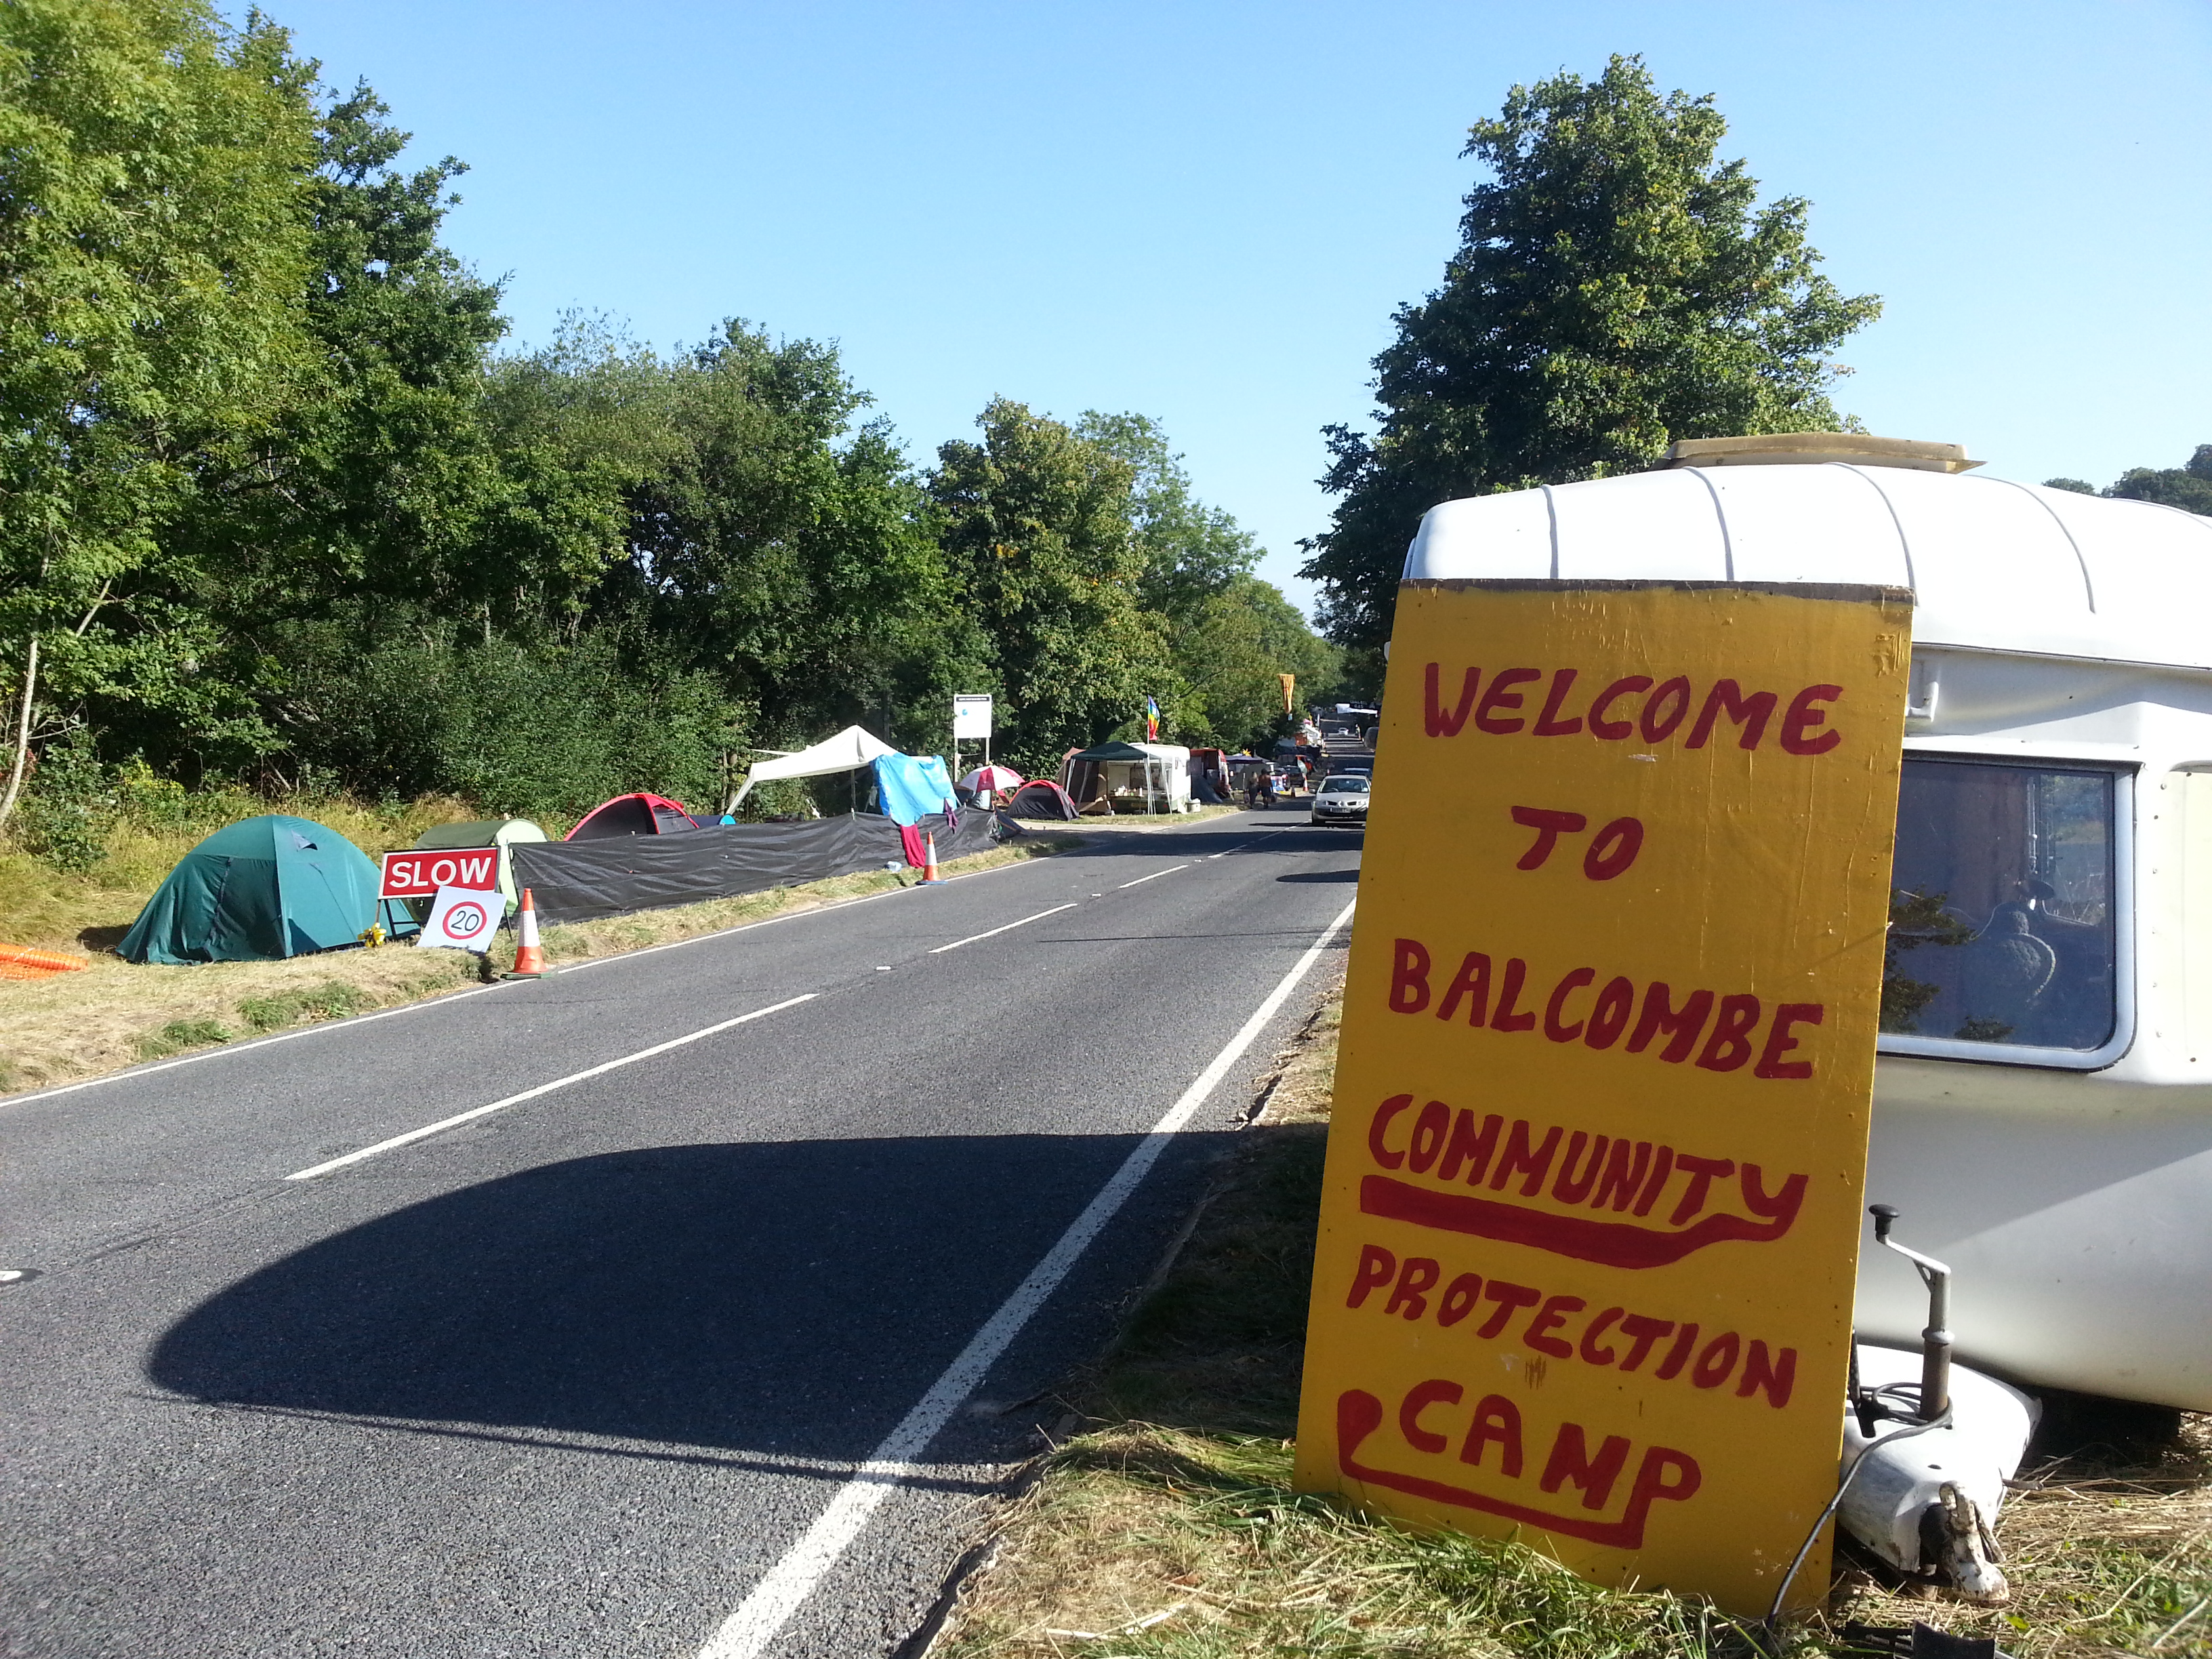 Welcome to Balcombe Community Protection Camp.